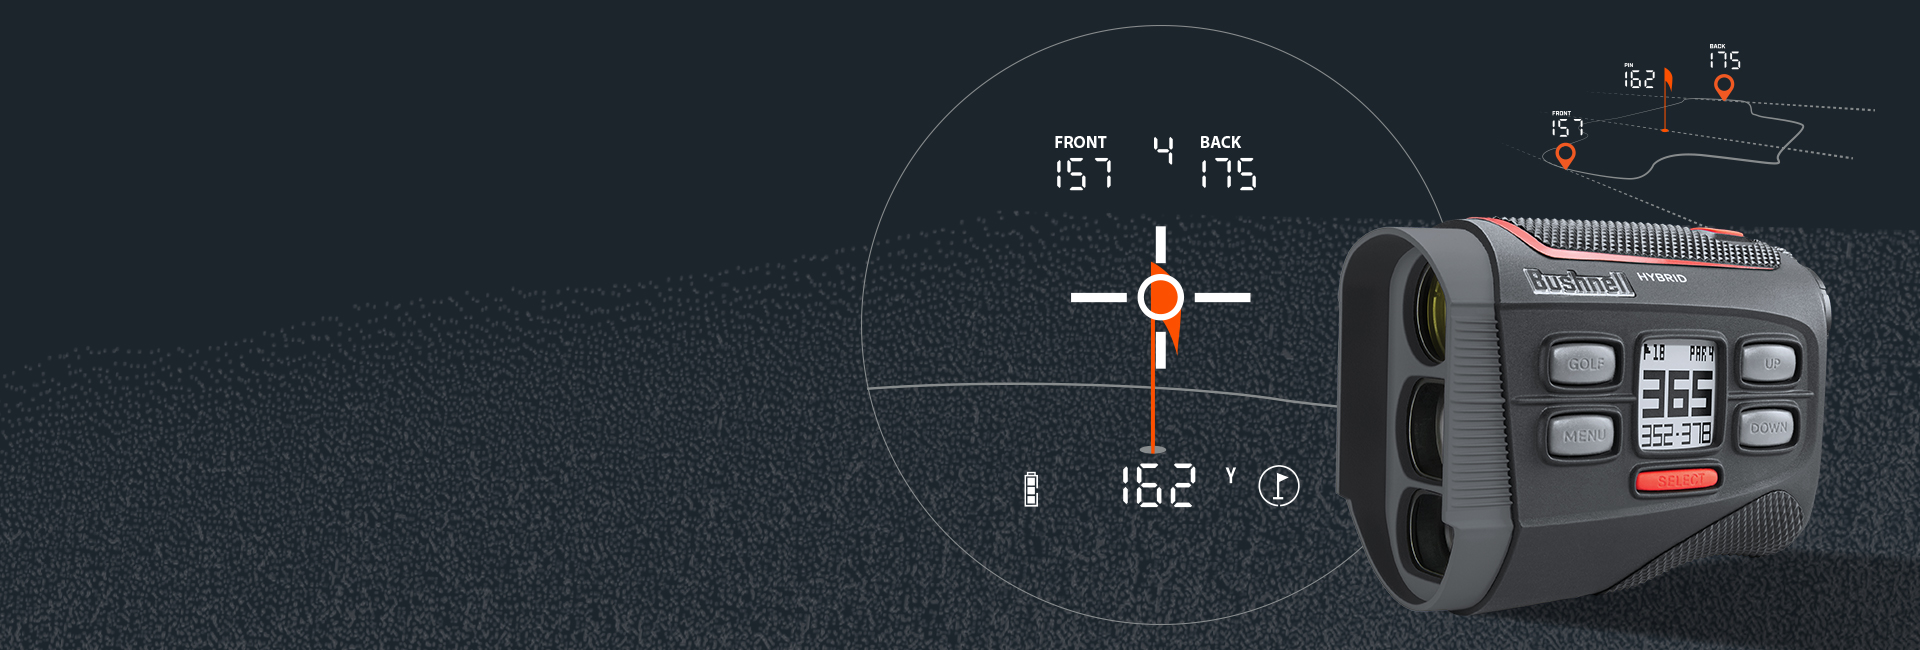 Bushnell Golf Laser Rangefinder Header Image with Scope HUD Display